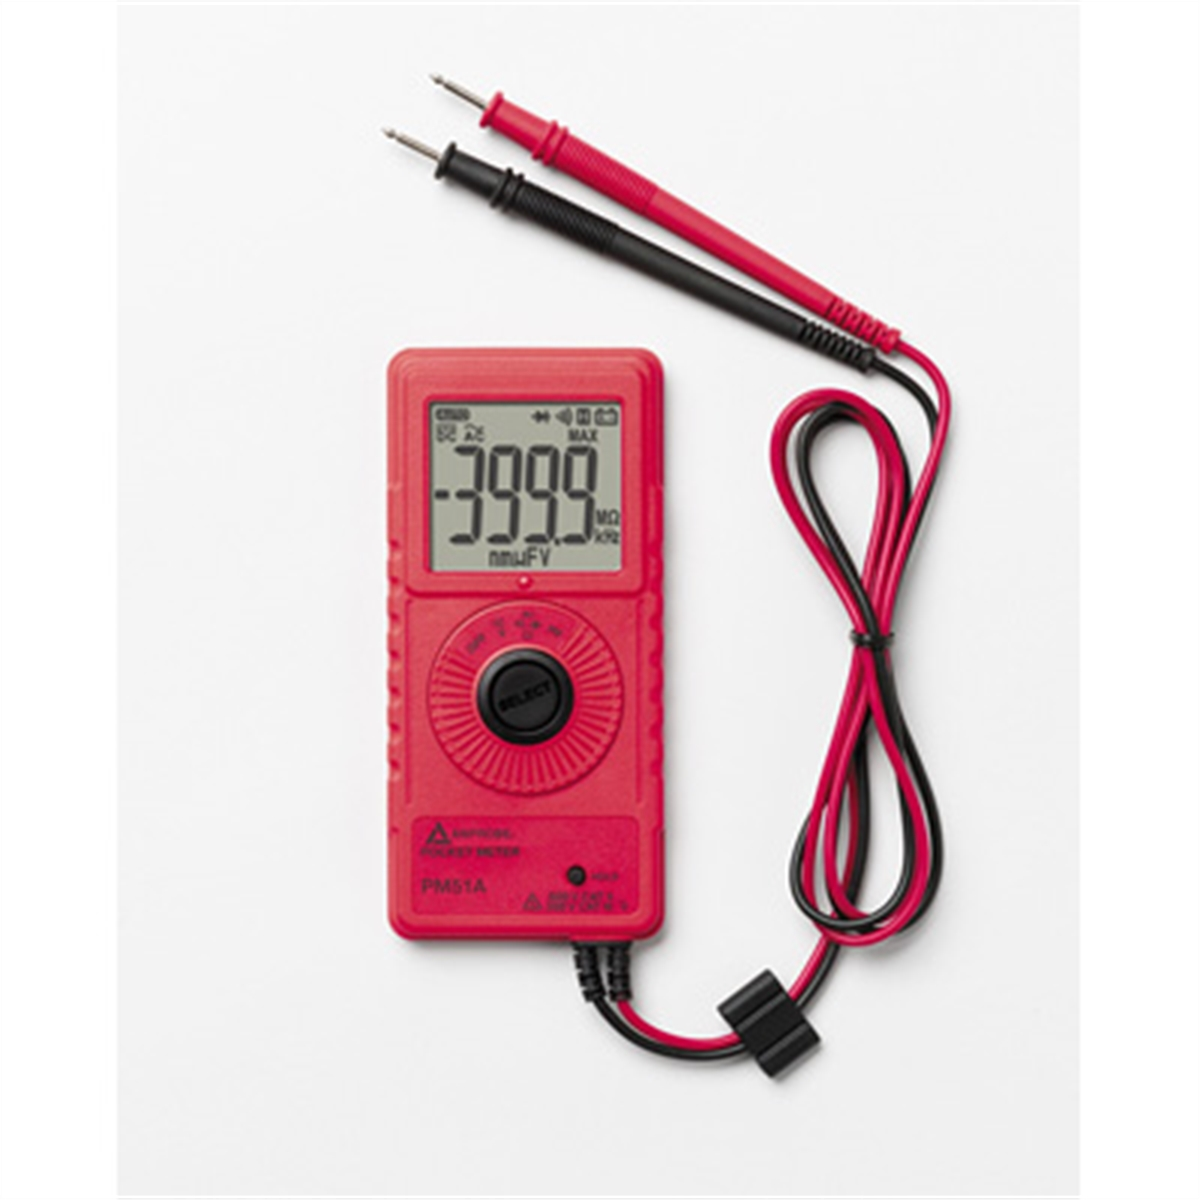 Multimeter, Amprobe, Pocket Sized,